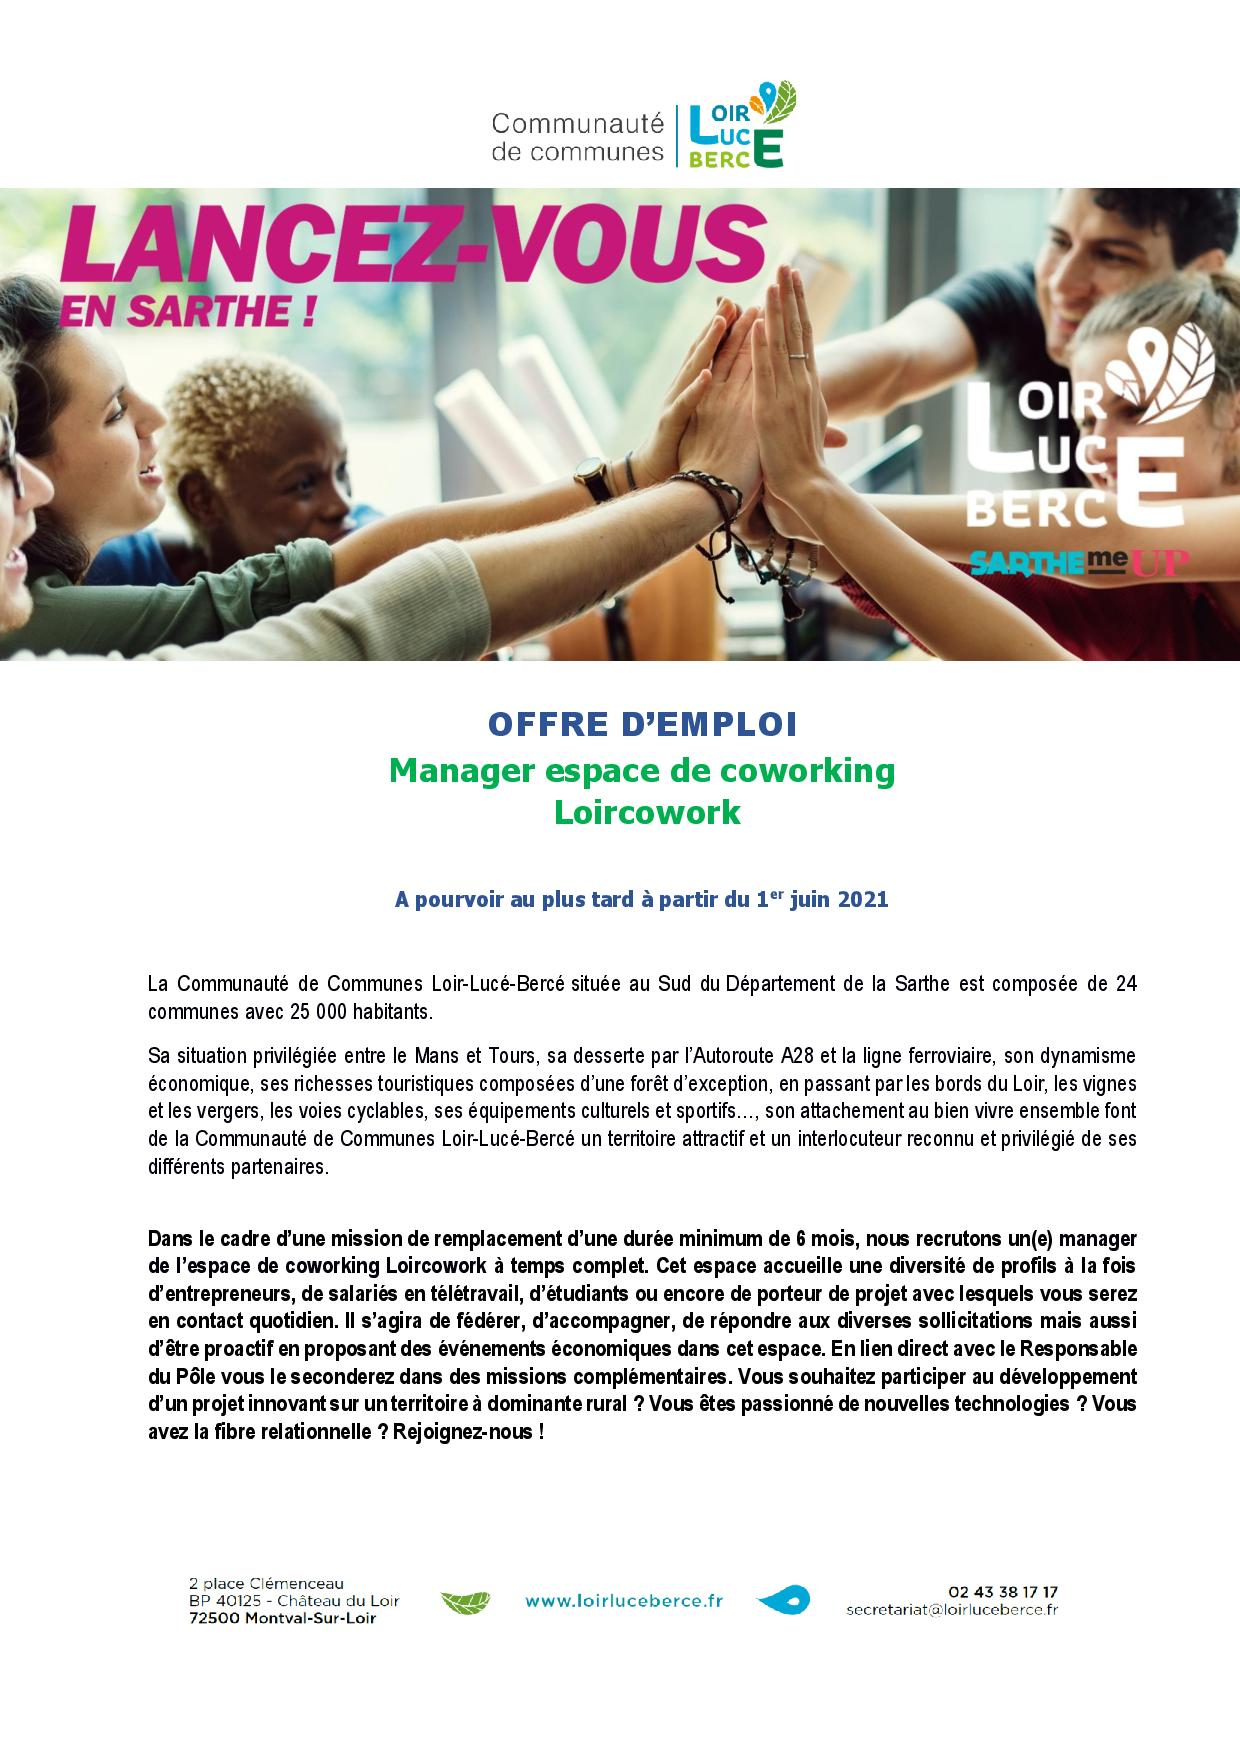 Offre d emploi Manager Loircowork CDD 6 mois-page-001.jpg